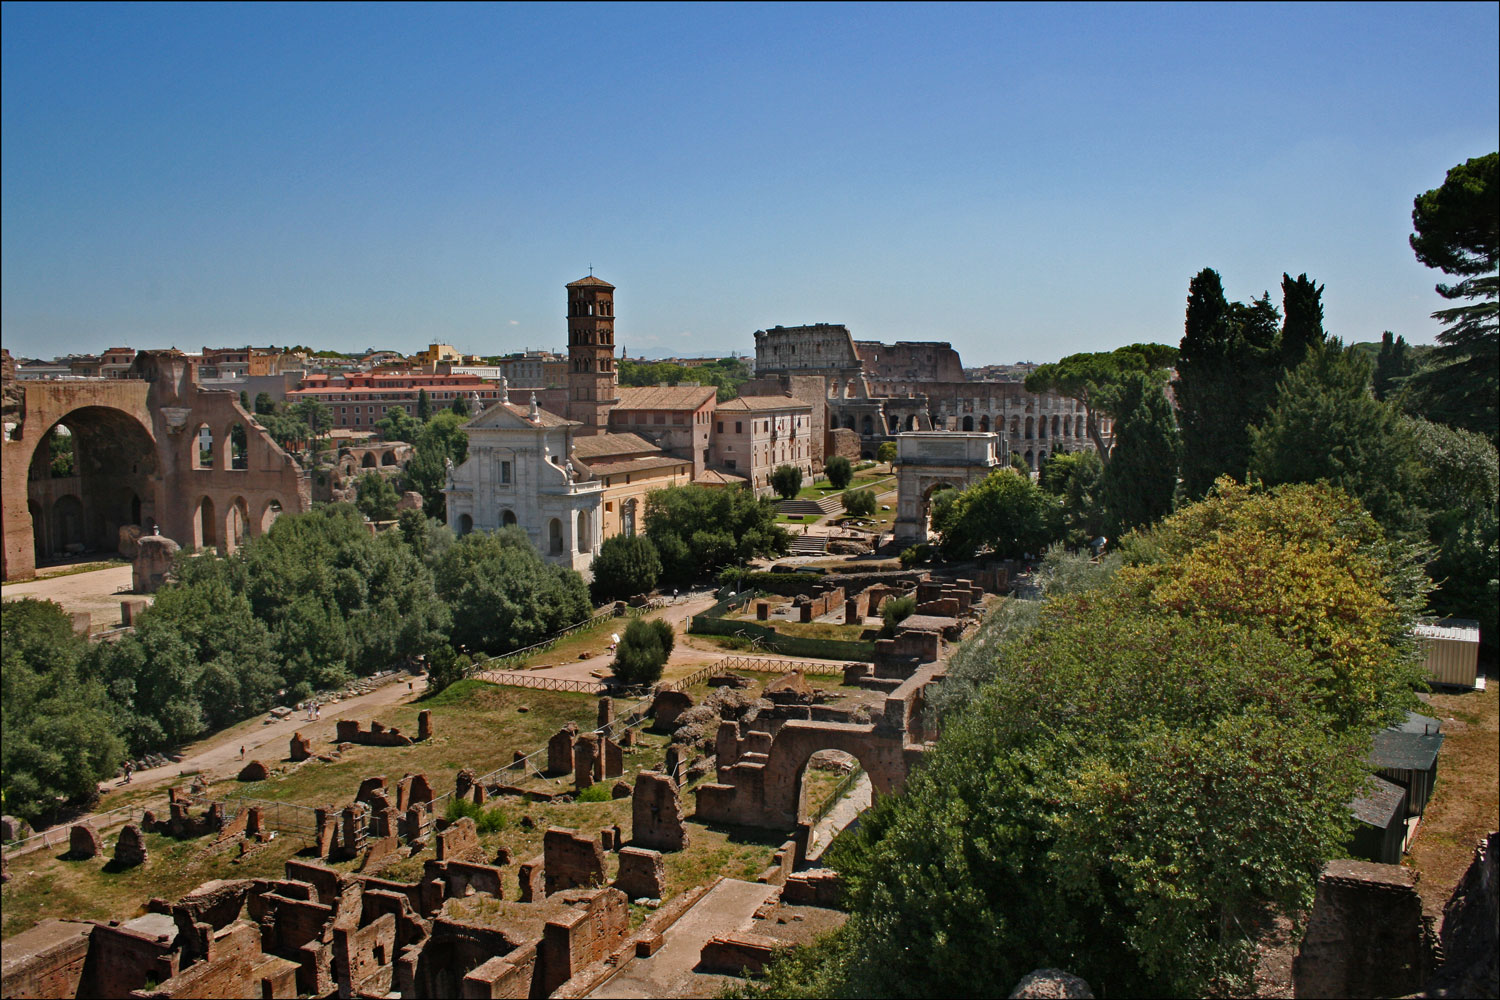 The Forum and the Colosseum